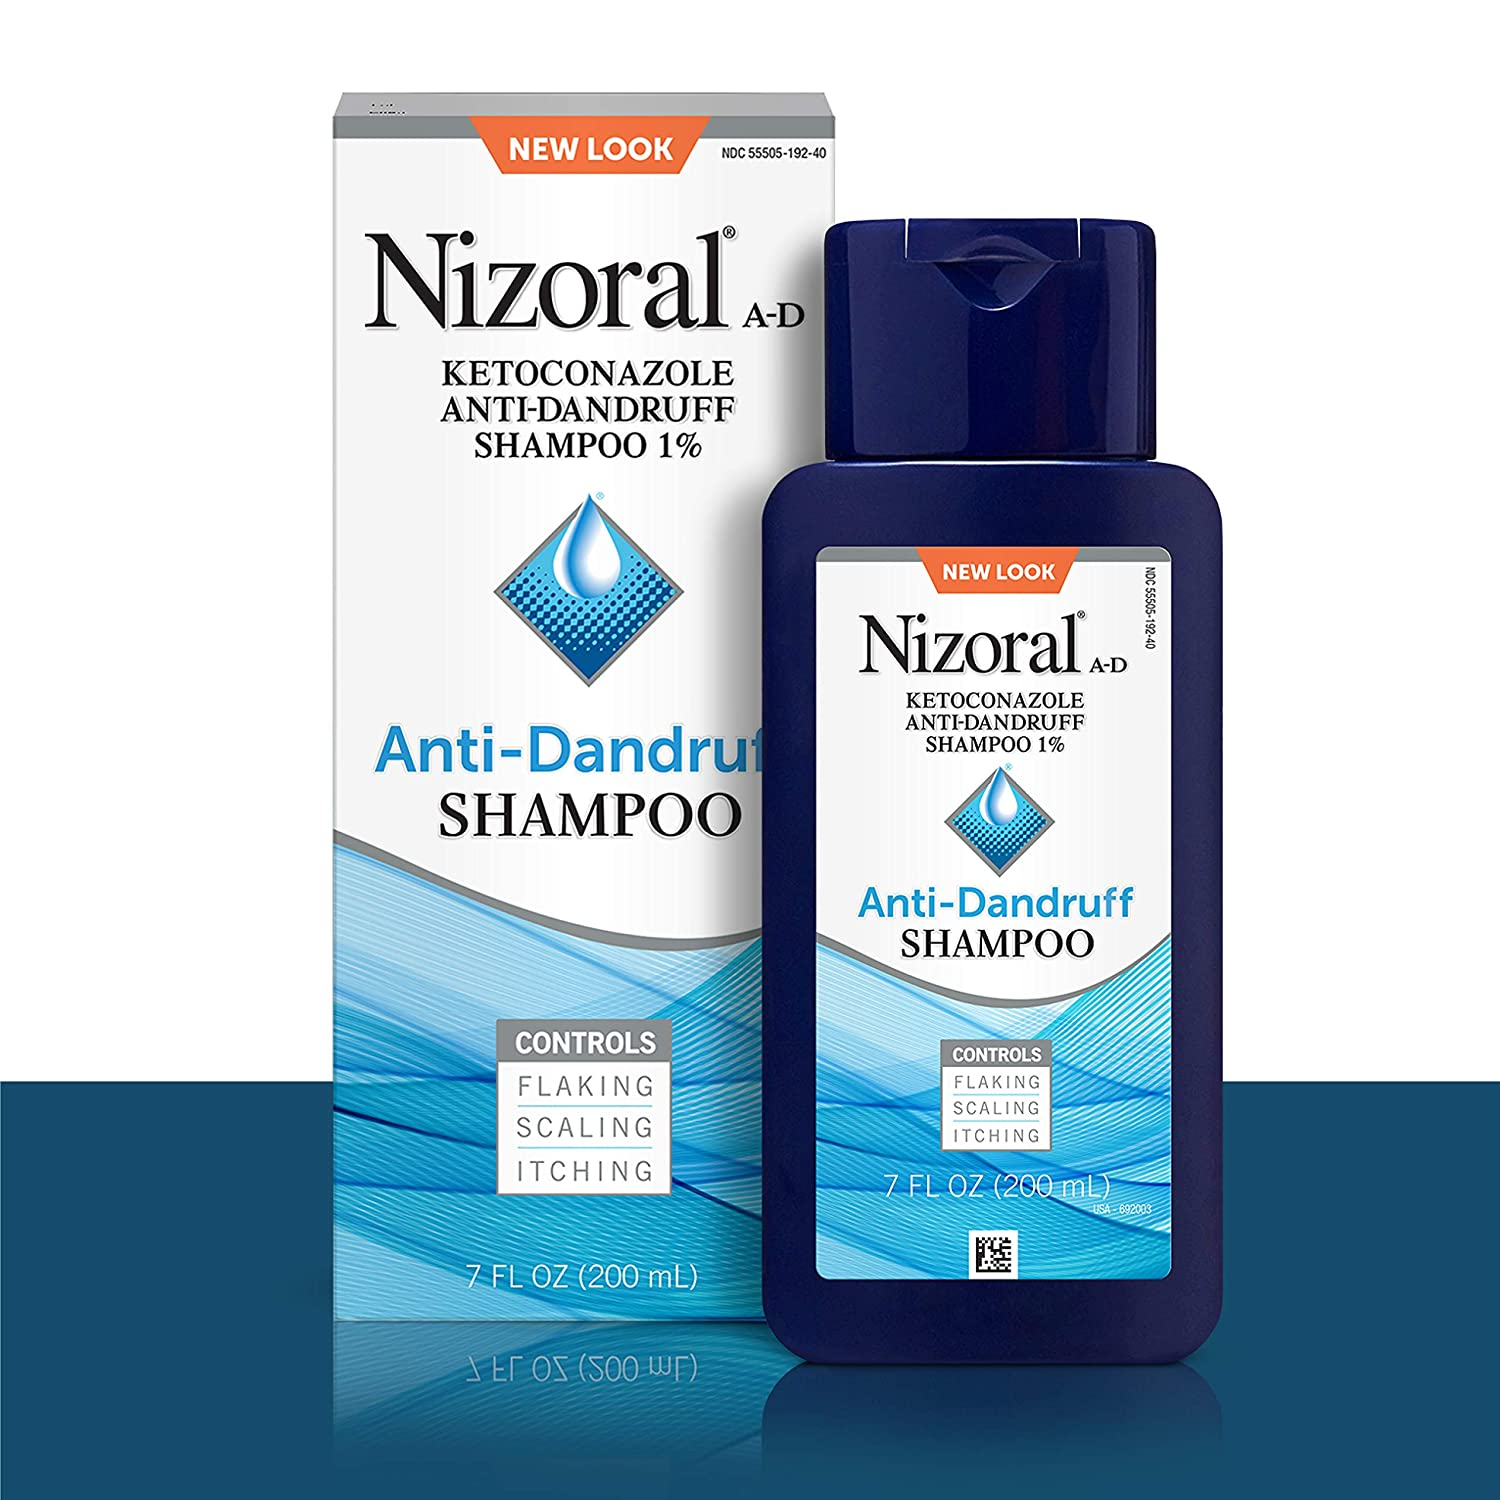 Nizoral a-d anti-dandruff shampoo, 7 fluid ounces; best shampoos for men